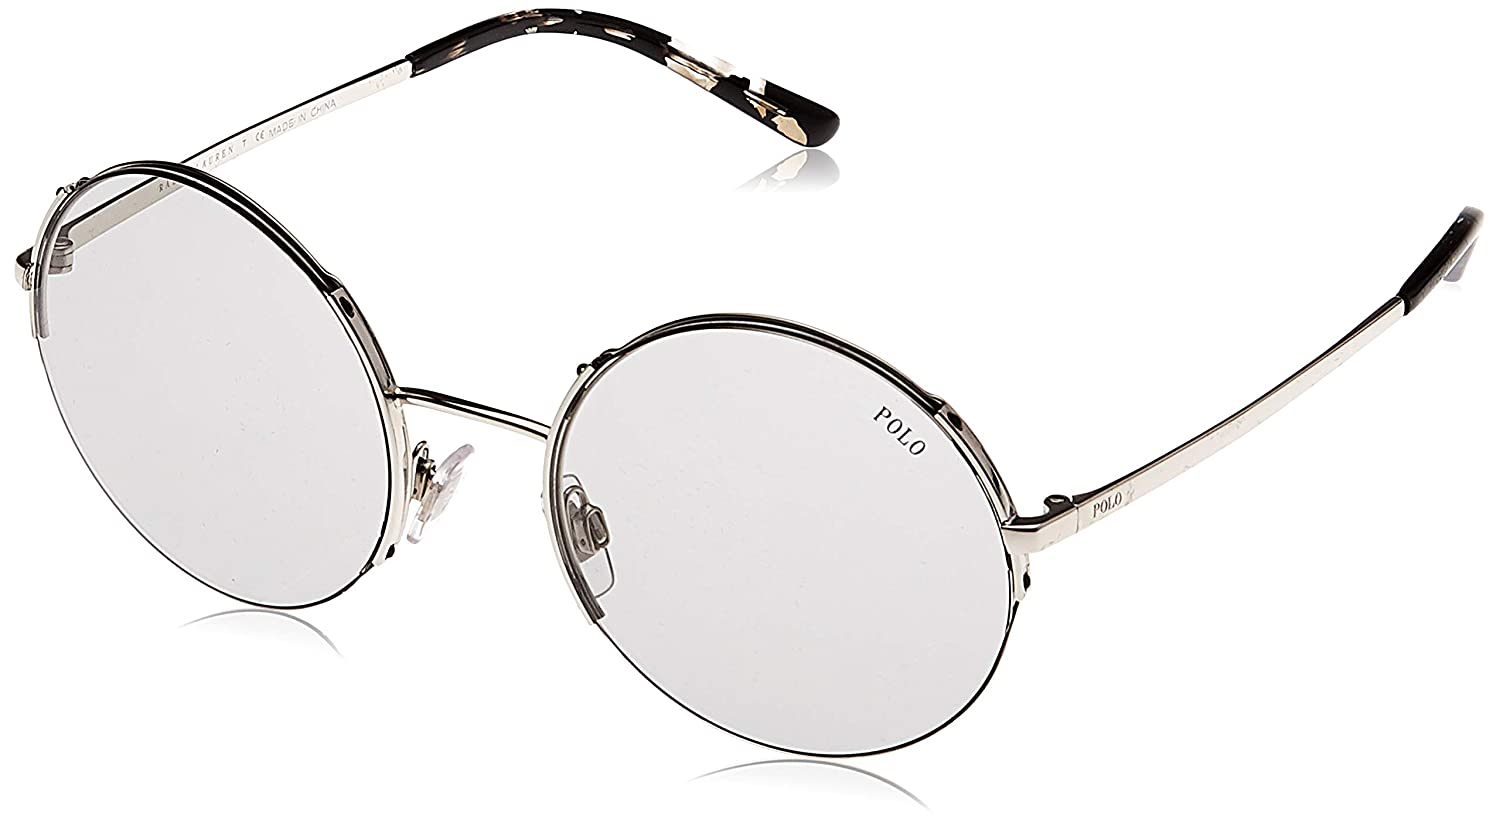 Polo 0PH3120 Gafas de sol, Redondas, 45, Silver: Amazon.es: Ropa y ...